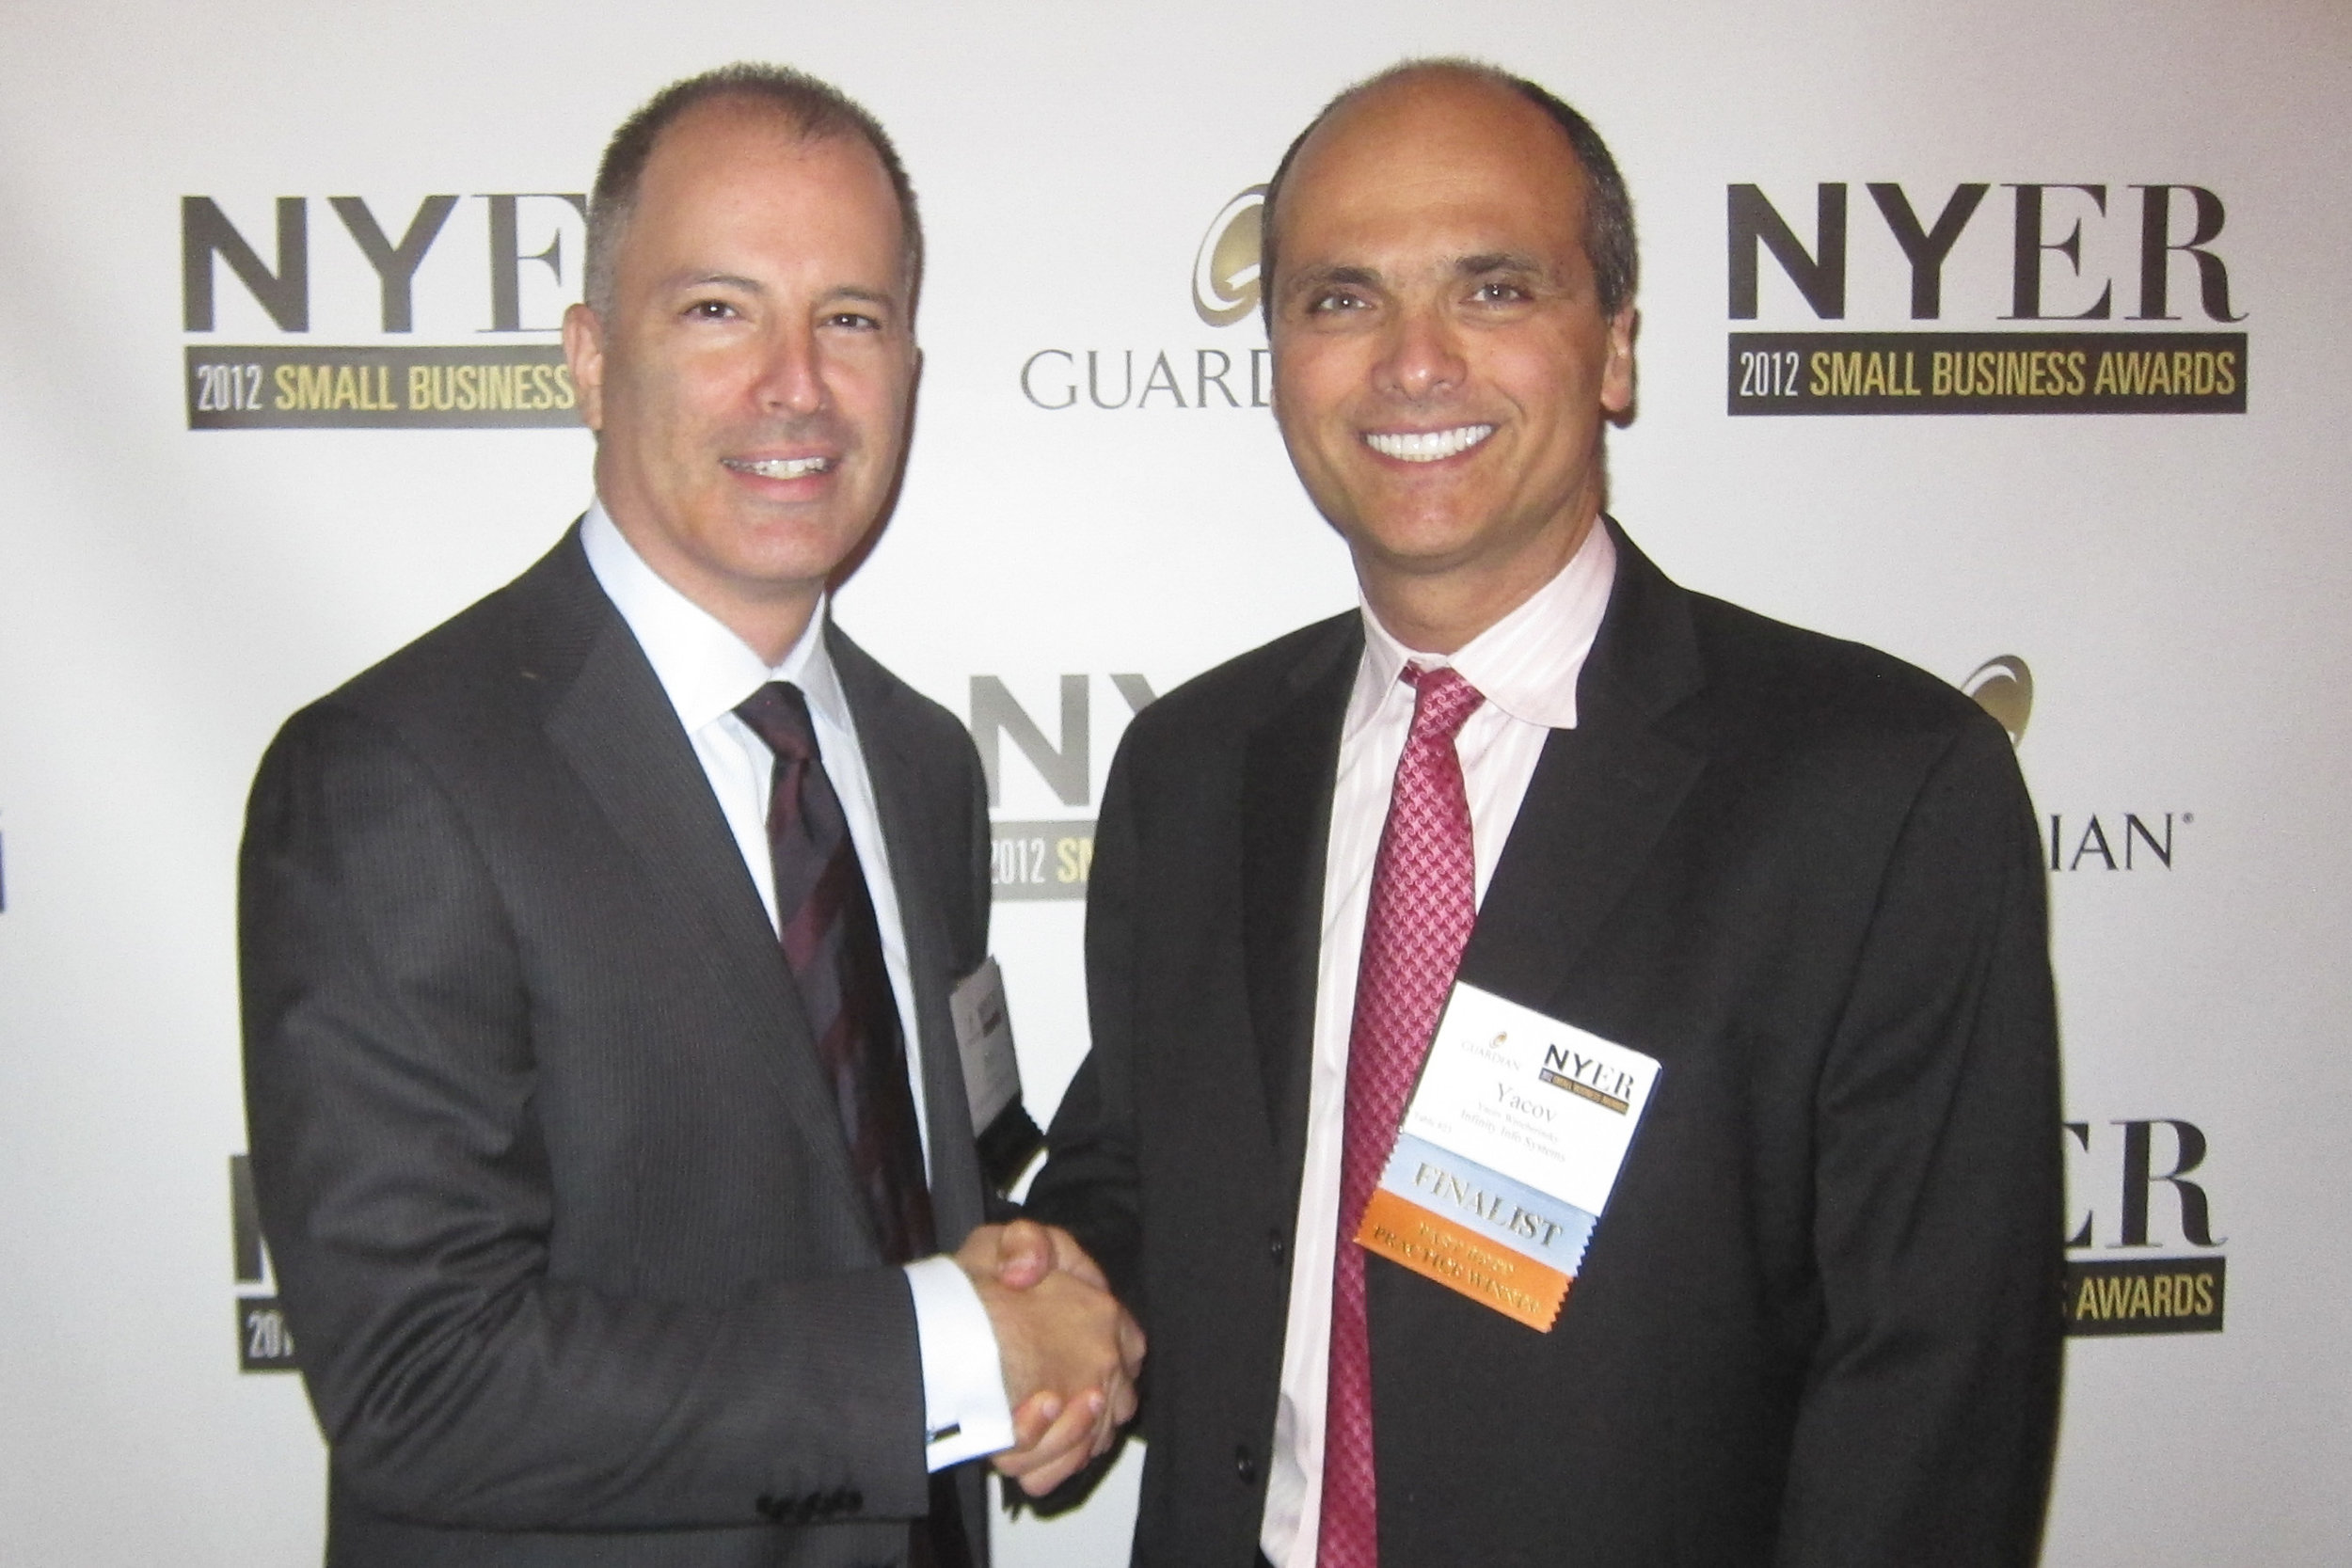 ACCEPTING A NEW YORK SMALL BUSINESS AWARD